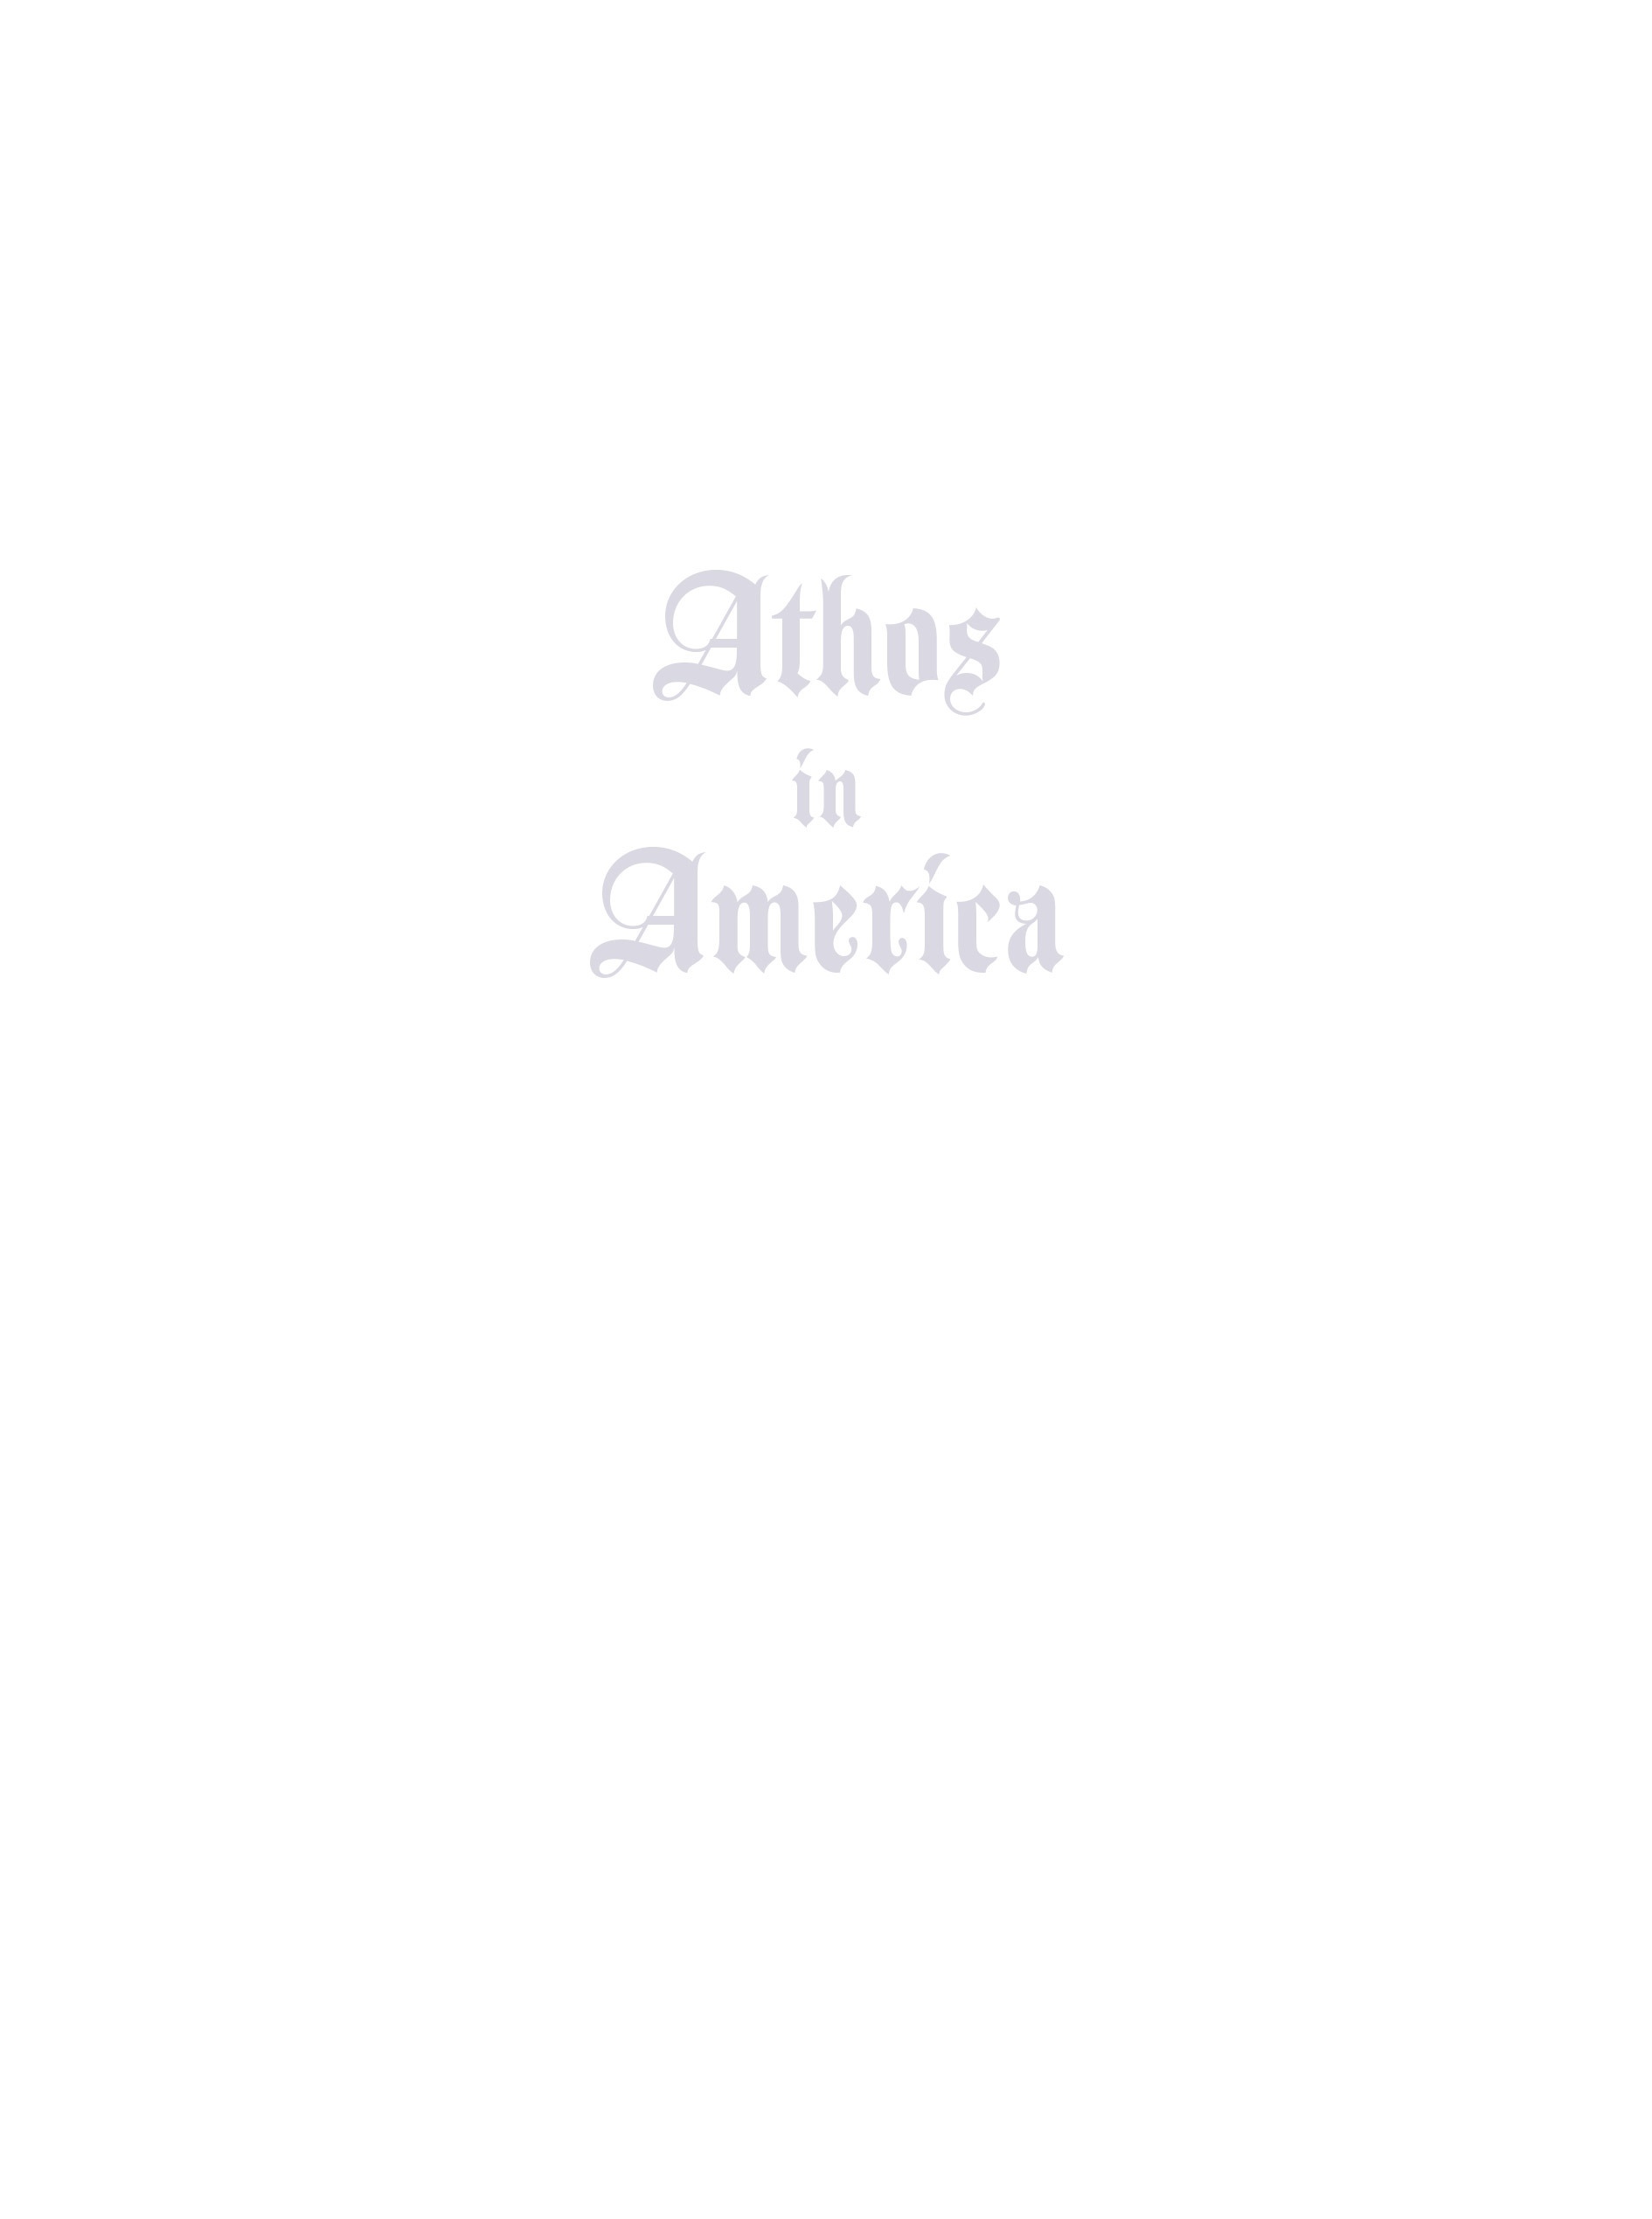 Read online Athos in America comic -  Issue #Athos in America Full - 2